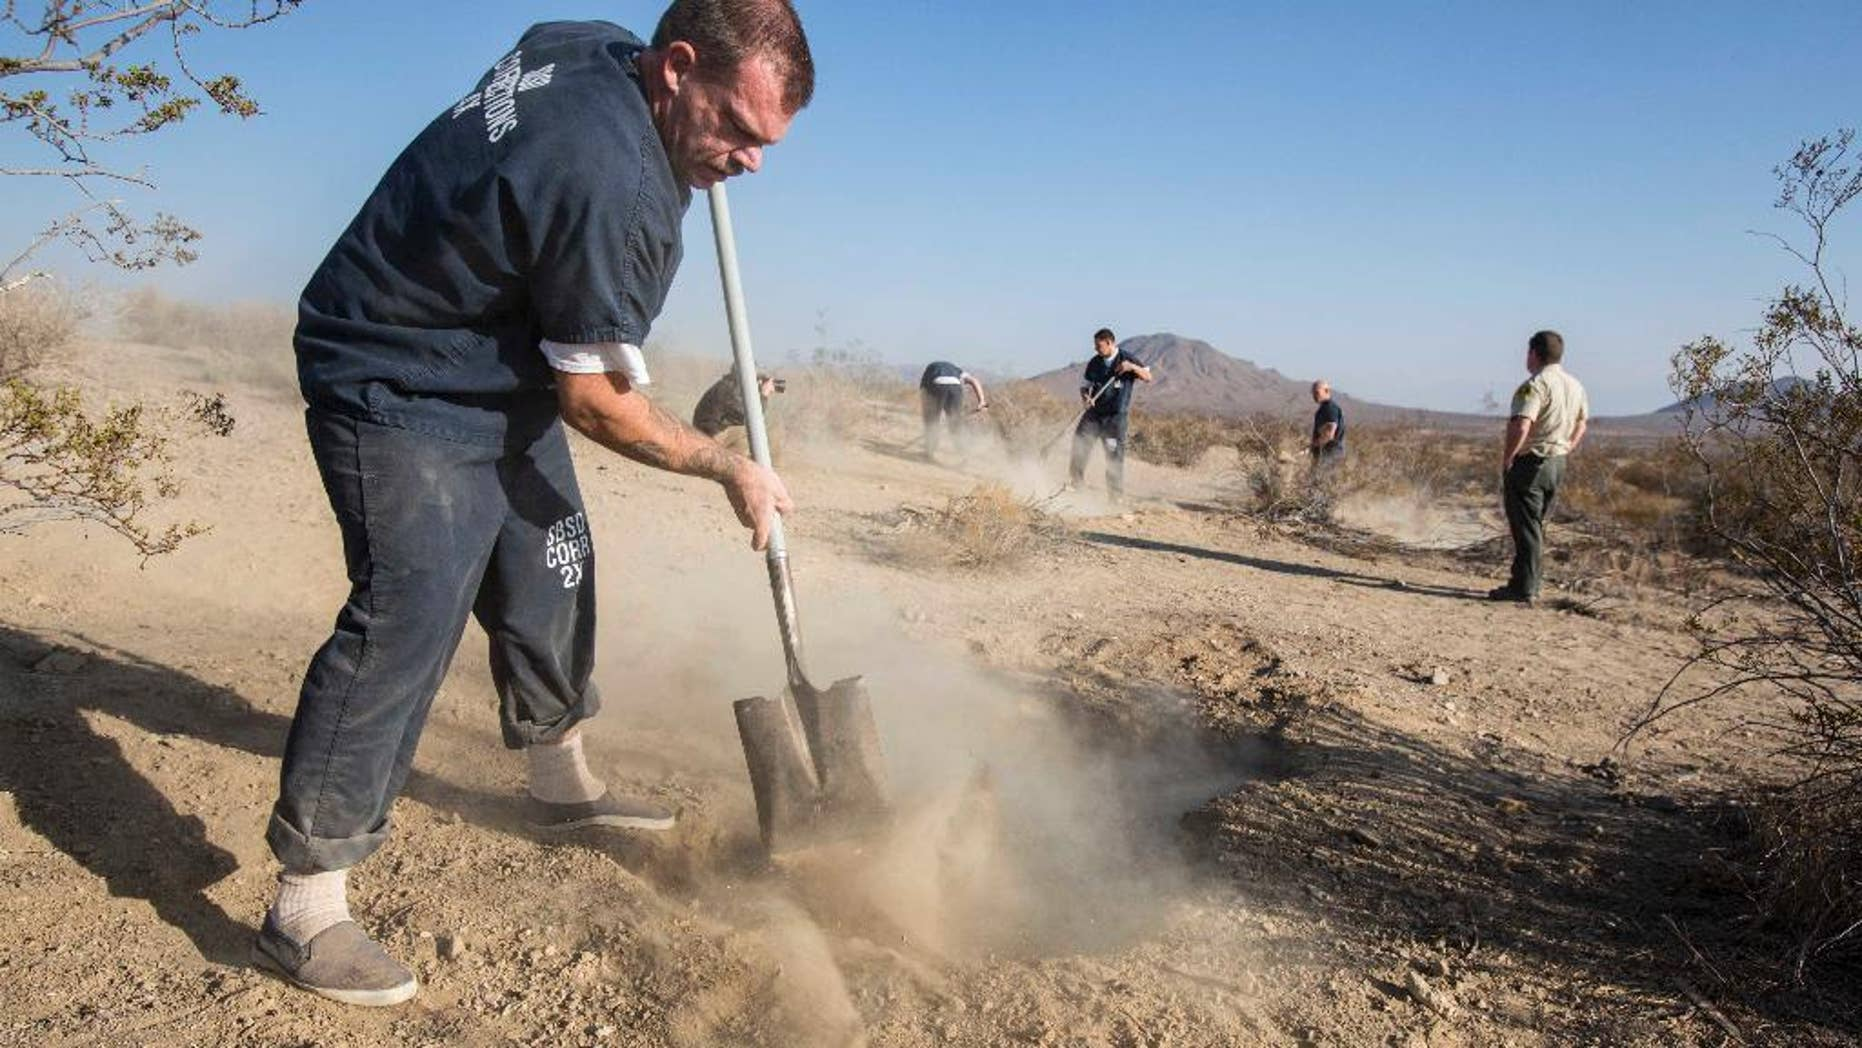 FILE - In this Nov. 15, 2013 file photo, workers fill the two shallow graves at the site on the outskirts of Victorville that contained the skeletal remains of members of missing McStay family in San Bernardino, Calif. Police investigating a missing persons report found a tall lamp lying on a bedroom floor and open suitcases containing folded clothes in the walk-in closet of a California home, according to court records unsealed Friday, Jan. 23, 2015, in the investigation that eventually led to the discovery of four dead family members in shallow desert graves. The documents offer the most detailed look yet of the disheveled condition of the family's house in Fallbrook, Calif., when investigators arrived in February 2010 while searching for Joseph McStay, then 40, his wife Summer, 43, and their two sons, Gianni, 4, and Joseph Jr., 3.(AP Photo/Ringo H.W. Chiu, File)